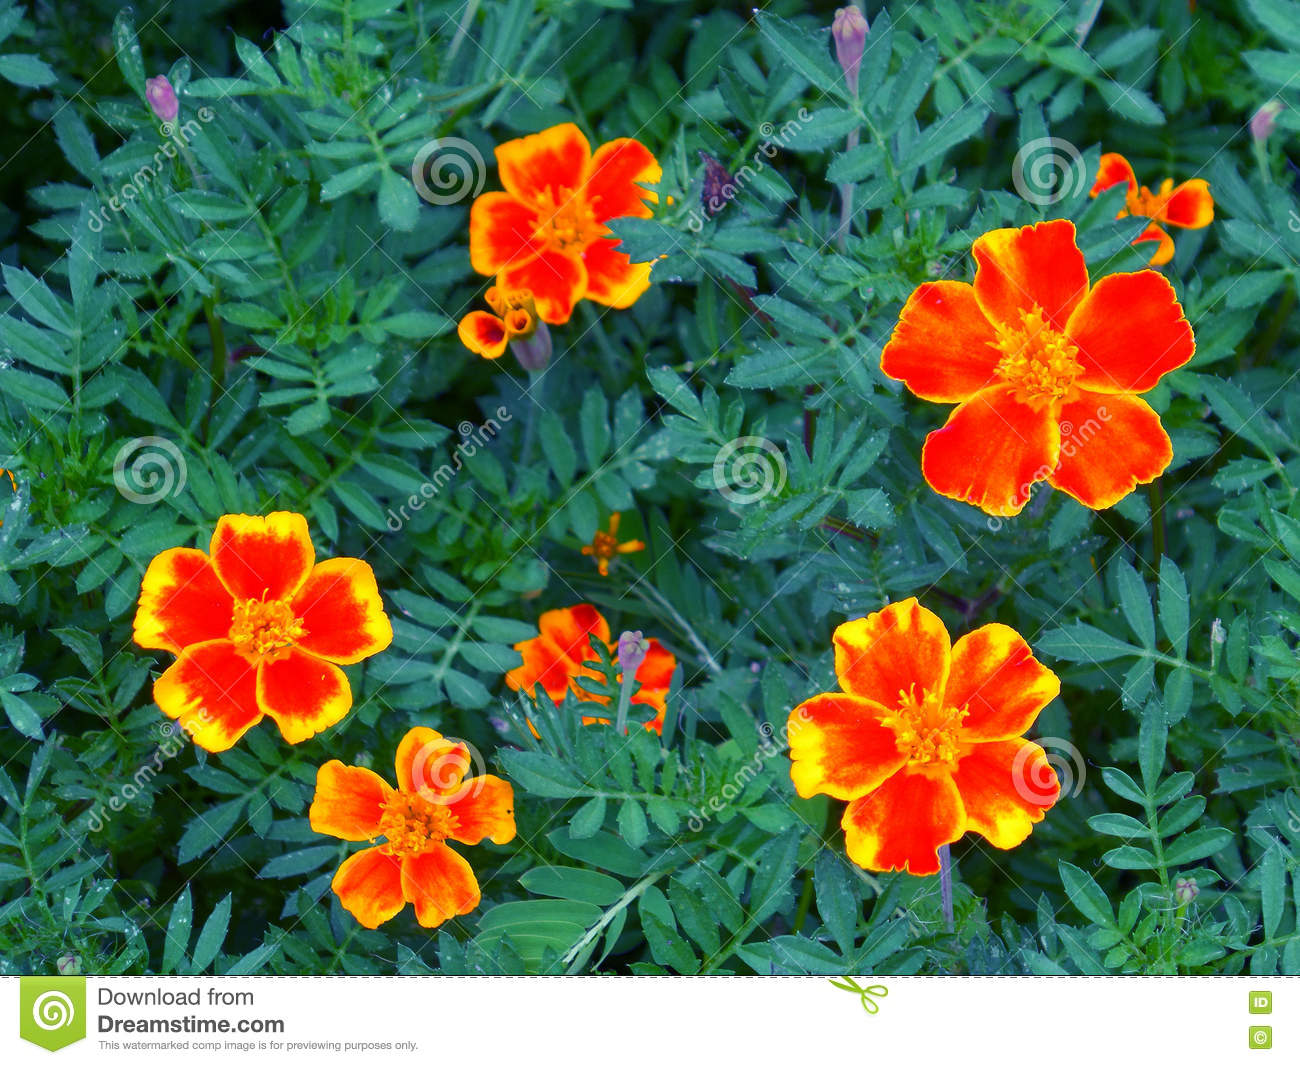 Vivid Orange And Yellow Two Tone Blooming Flowers On The Green